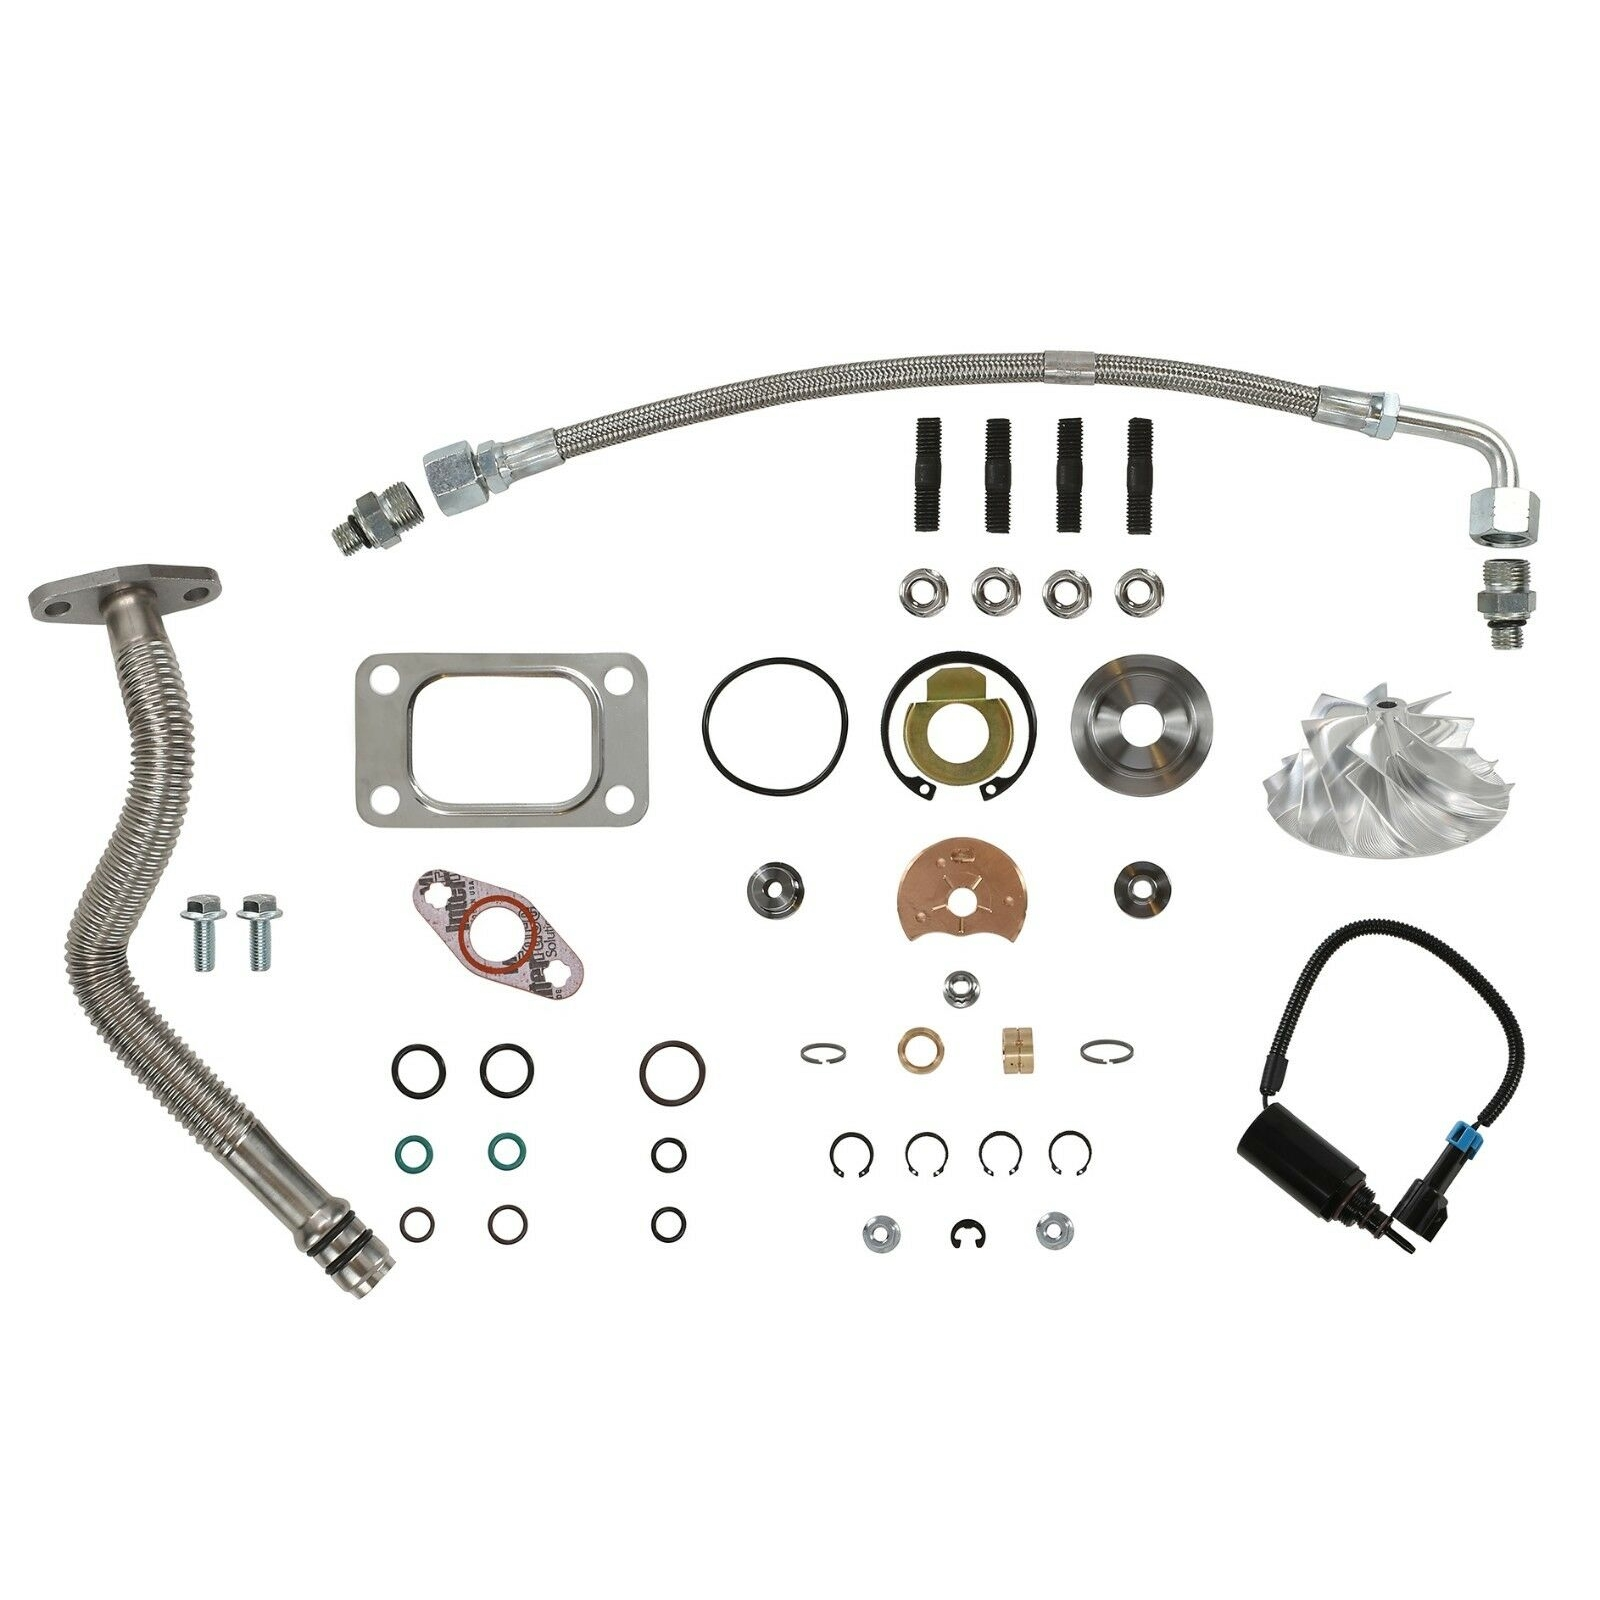 HE351CW Turbo Rebuild Kit Billet Wheel Oil Lines Wastegate Solenoid For 04.5-07 5.9L ISB Dodge Ram Cummins Diesel